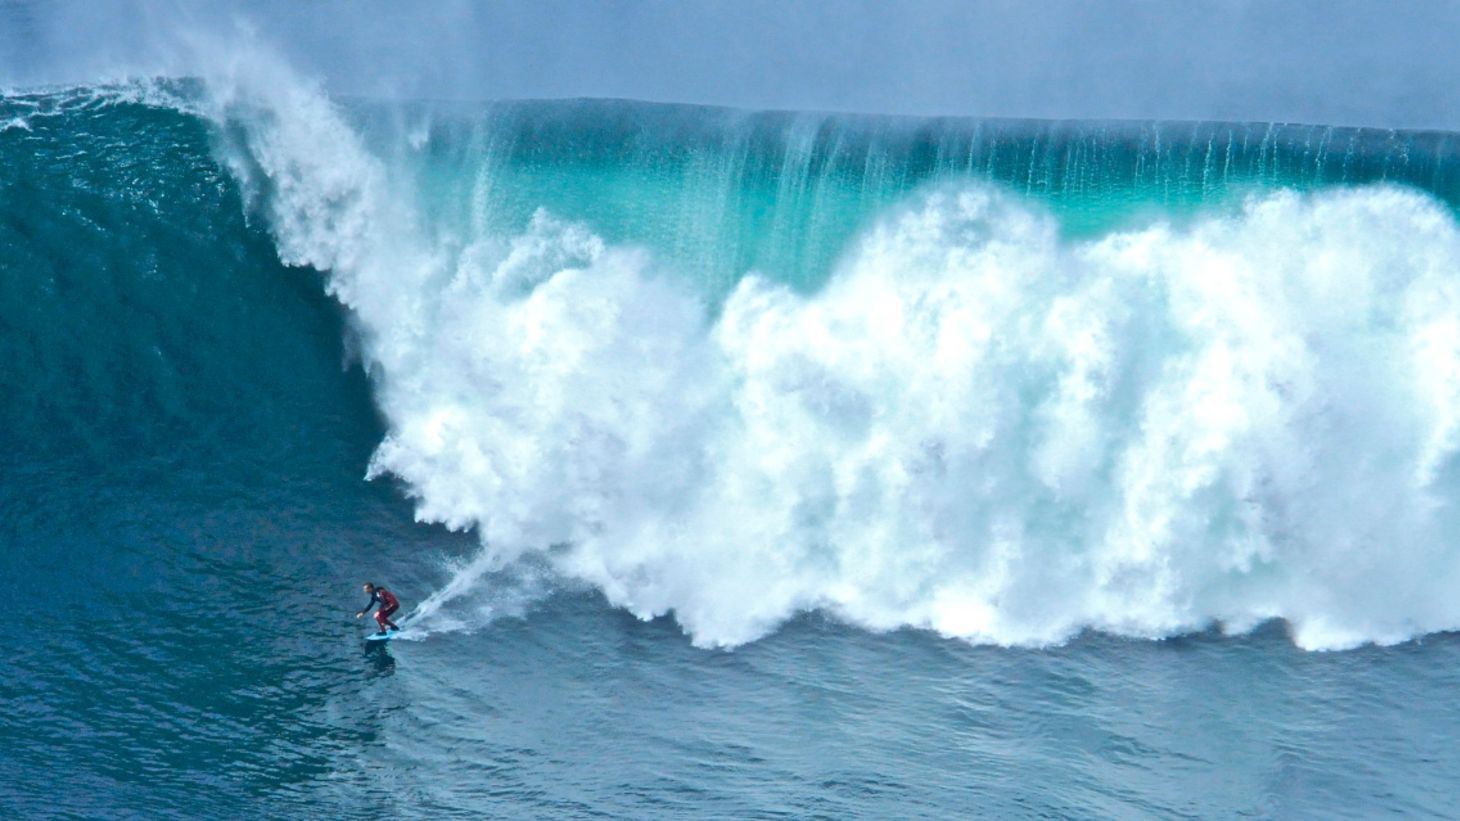 Watch surfers tackle monster waves in Mullaghmore.